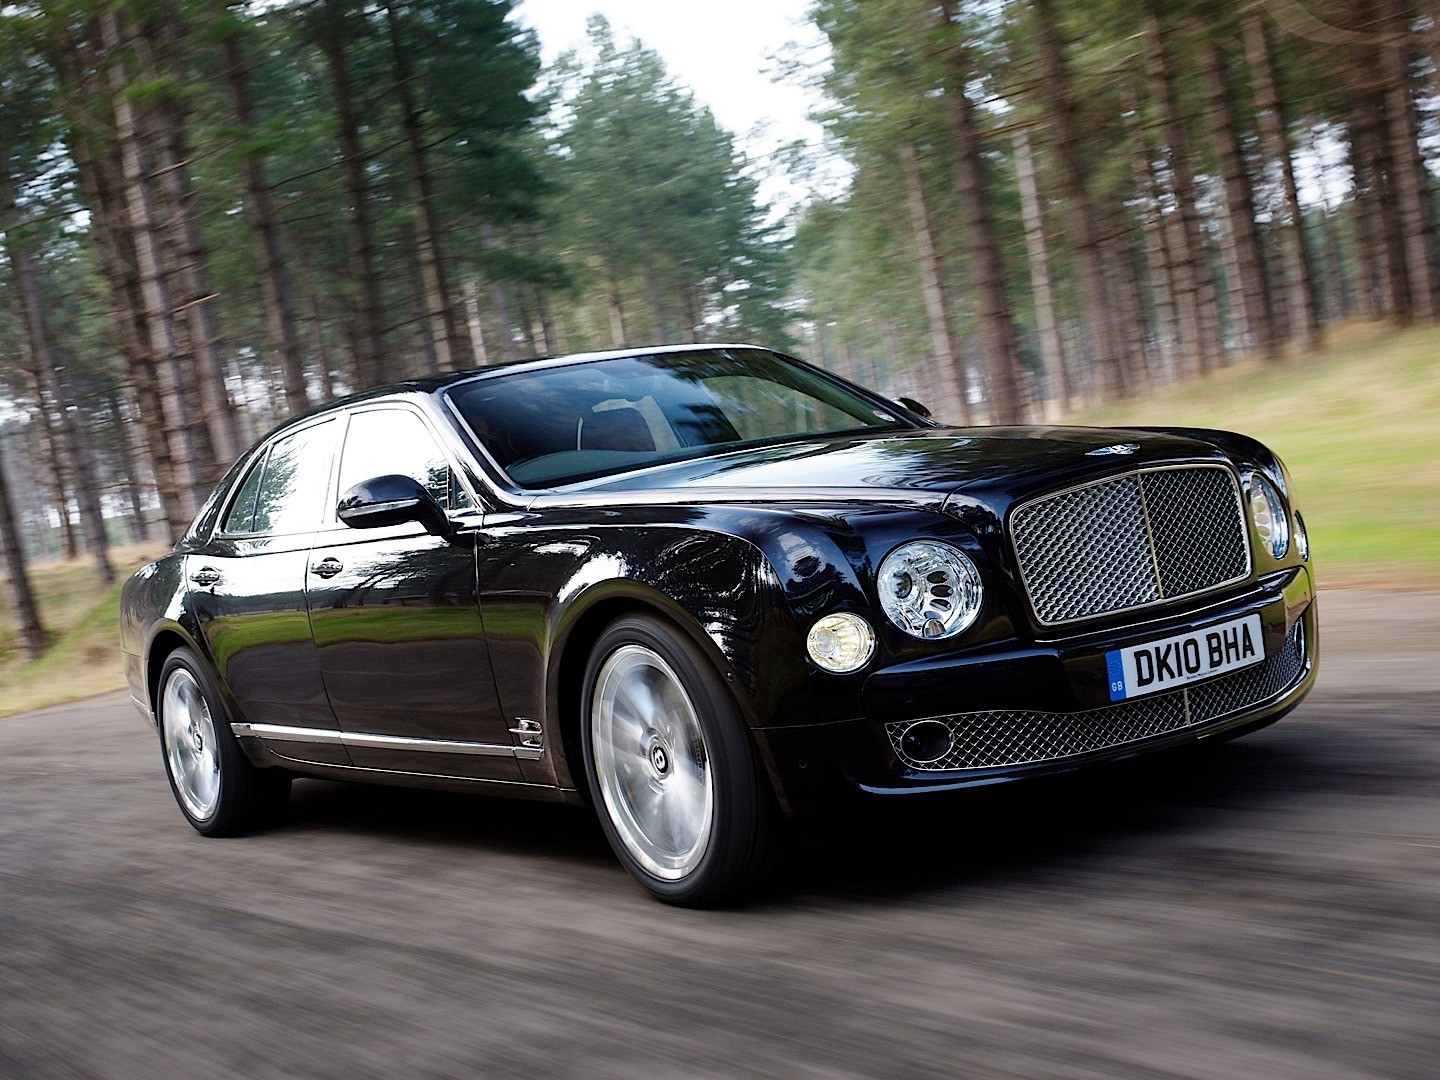 bentley mulsanne specs 2009 2010 2011 2012 2013 2014 2015 2016 autoevolution. Black Bedroom Furniture Sets. Home Design Ideas